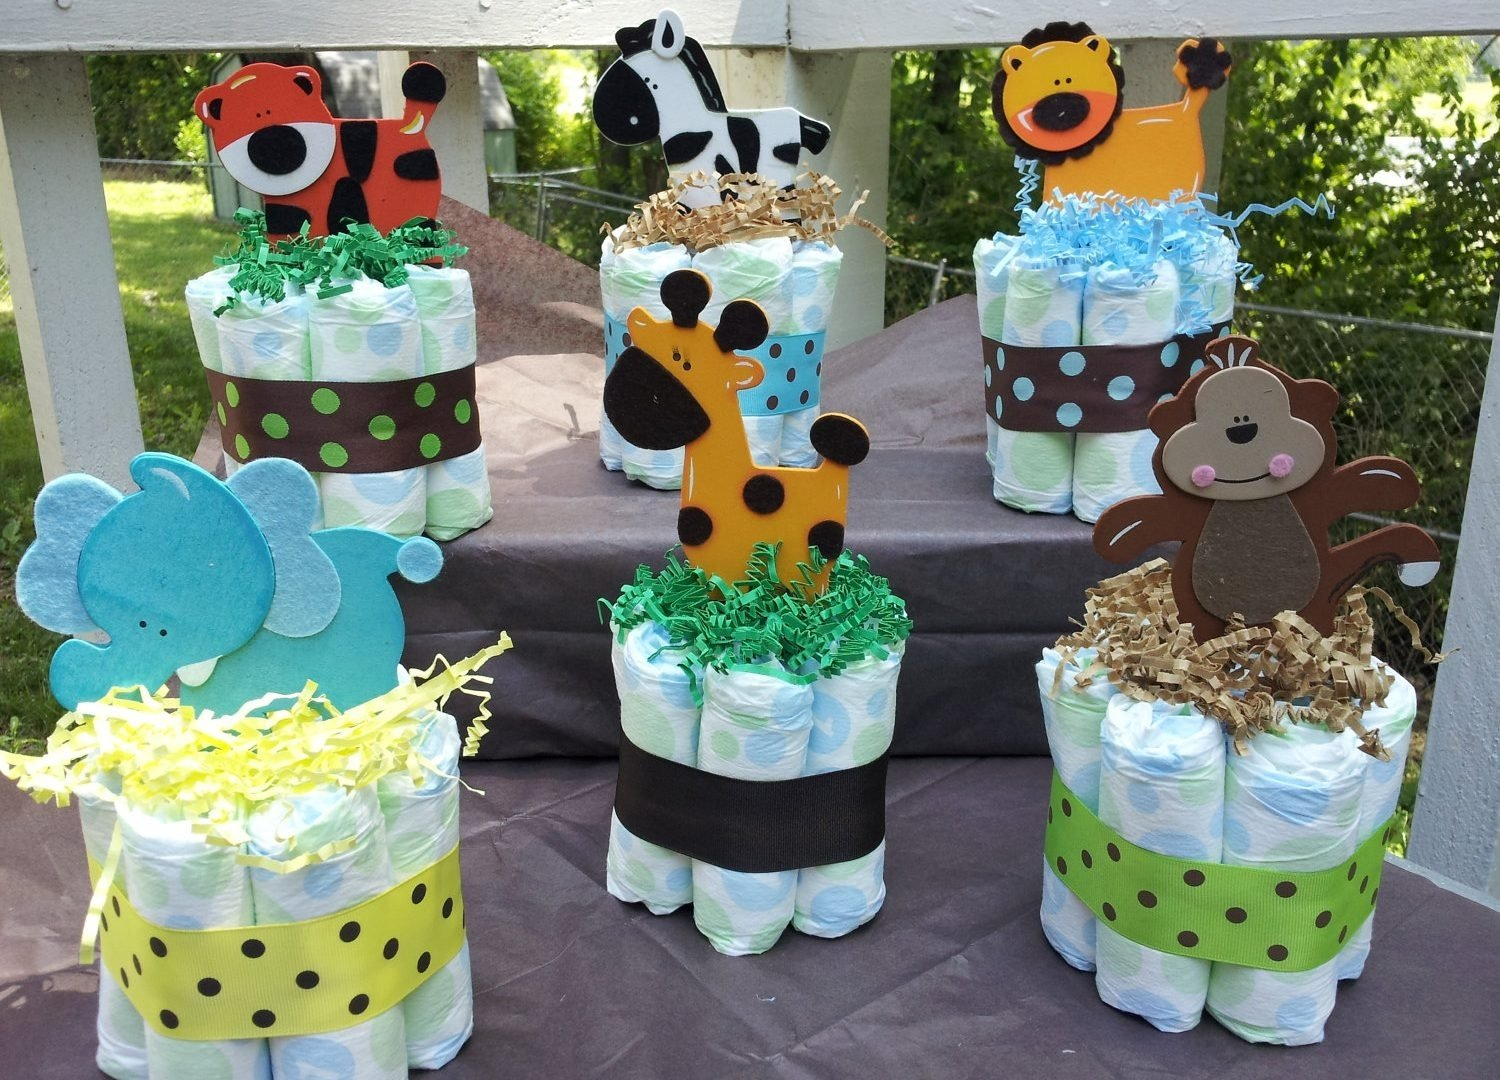 10 Attractive Baby Shower Ideas For Boys On A Budget ideas stirring baby shower for boys on budget uk food boy pinterest 2020